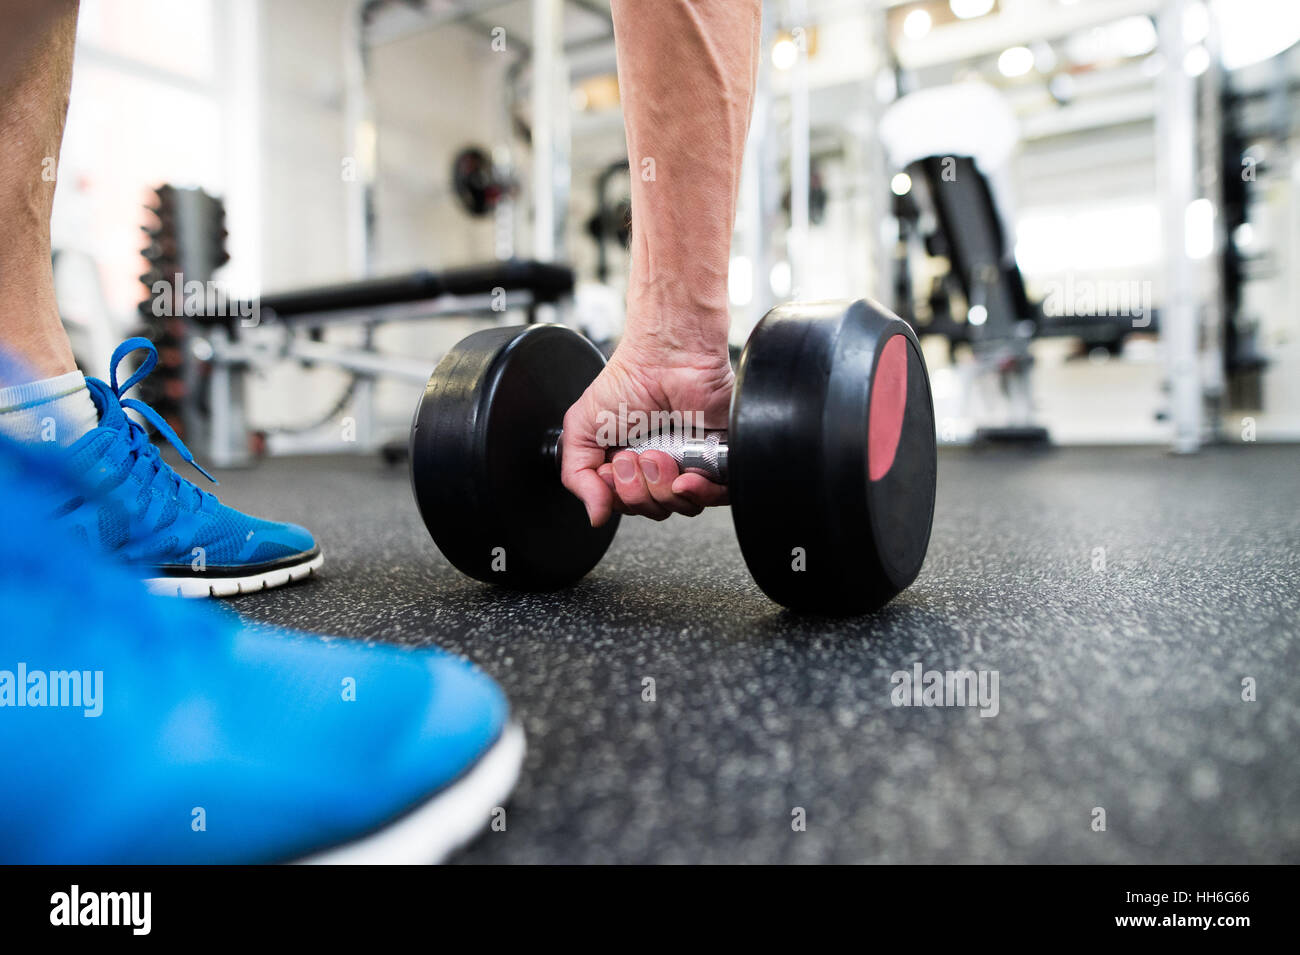 Unrecognizable senior man in gym working out with weights - Stock Image